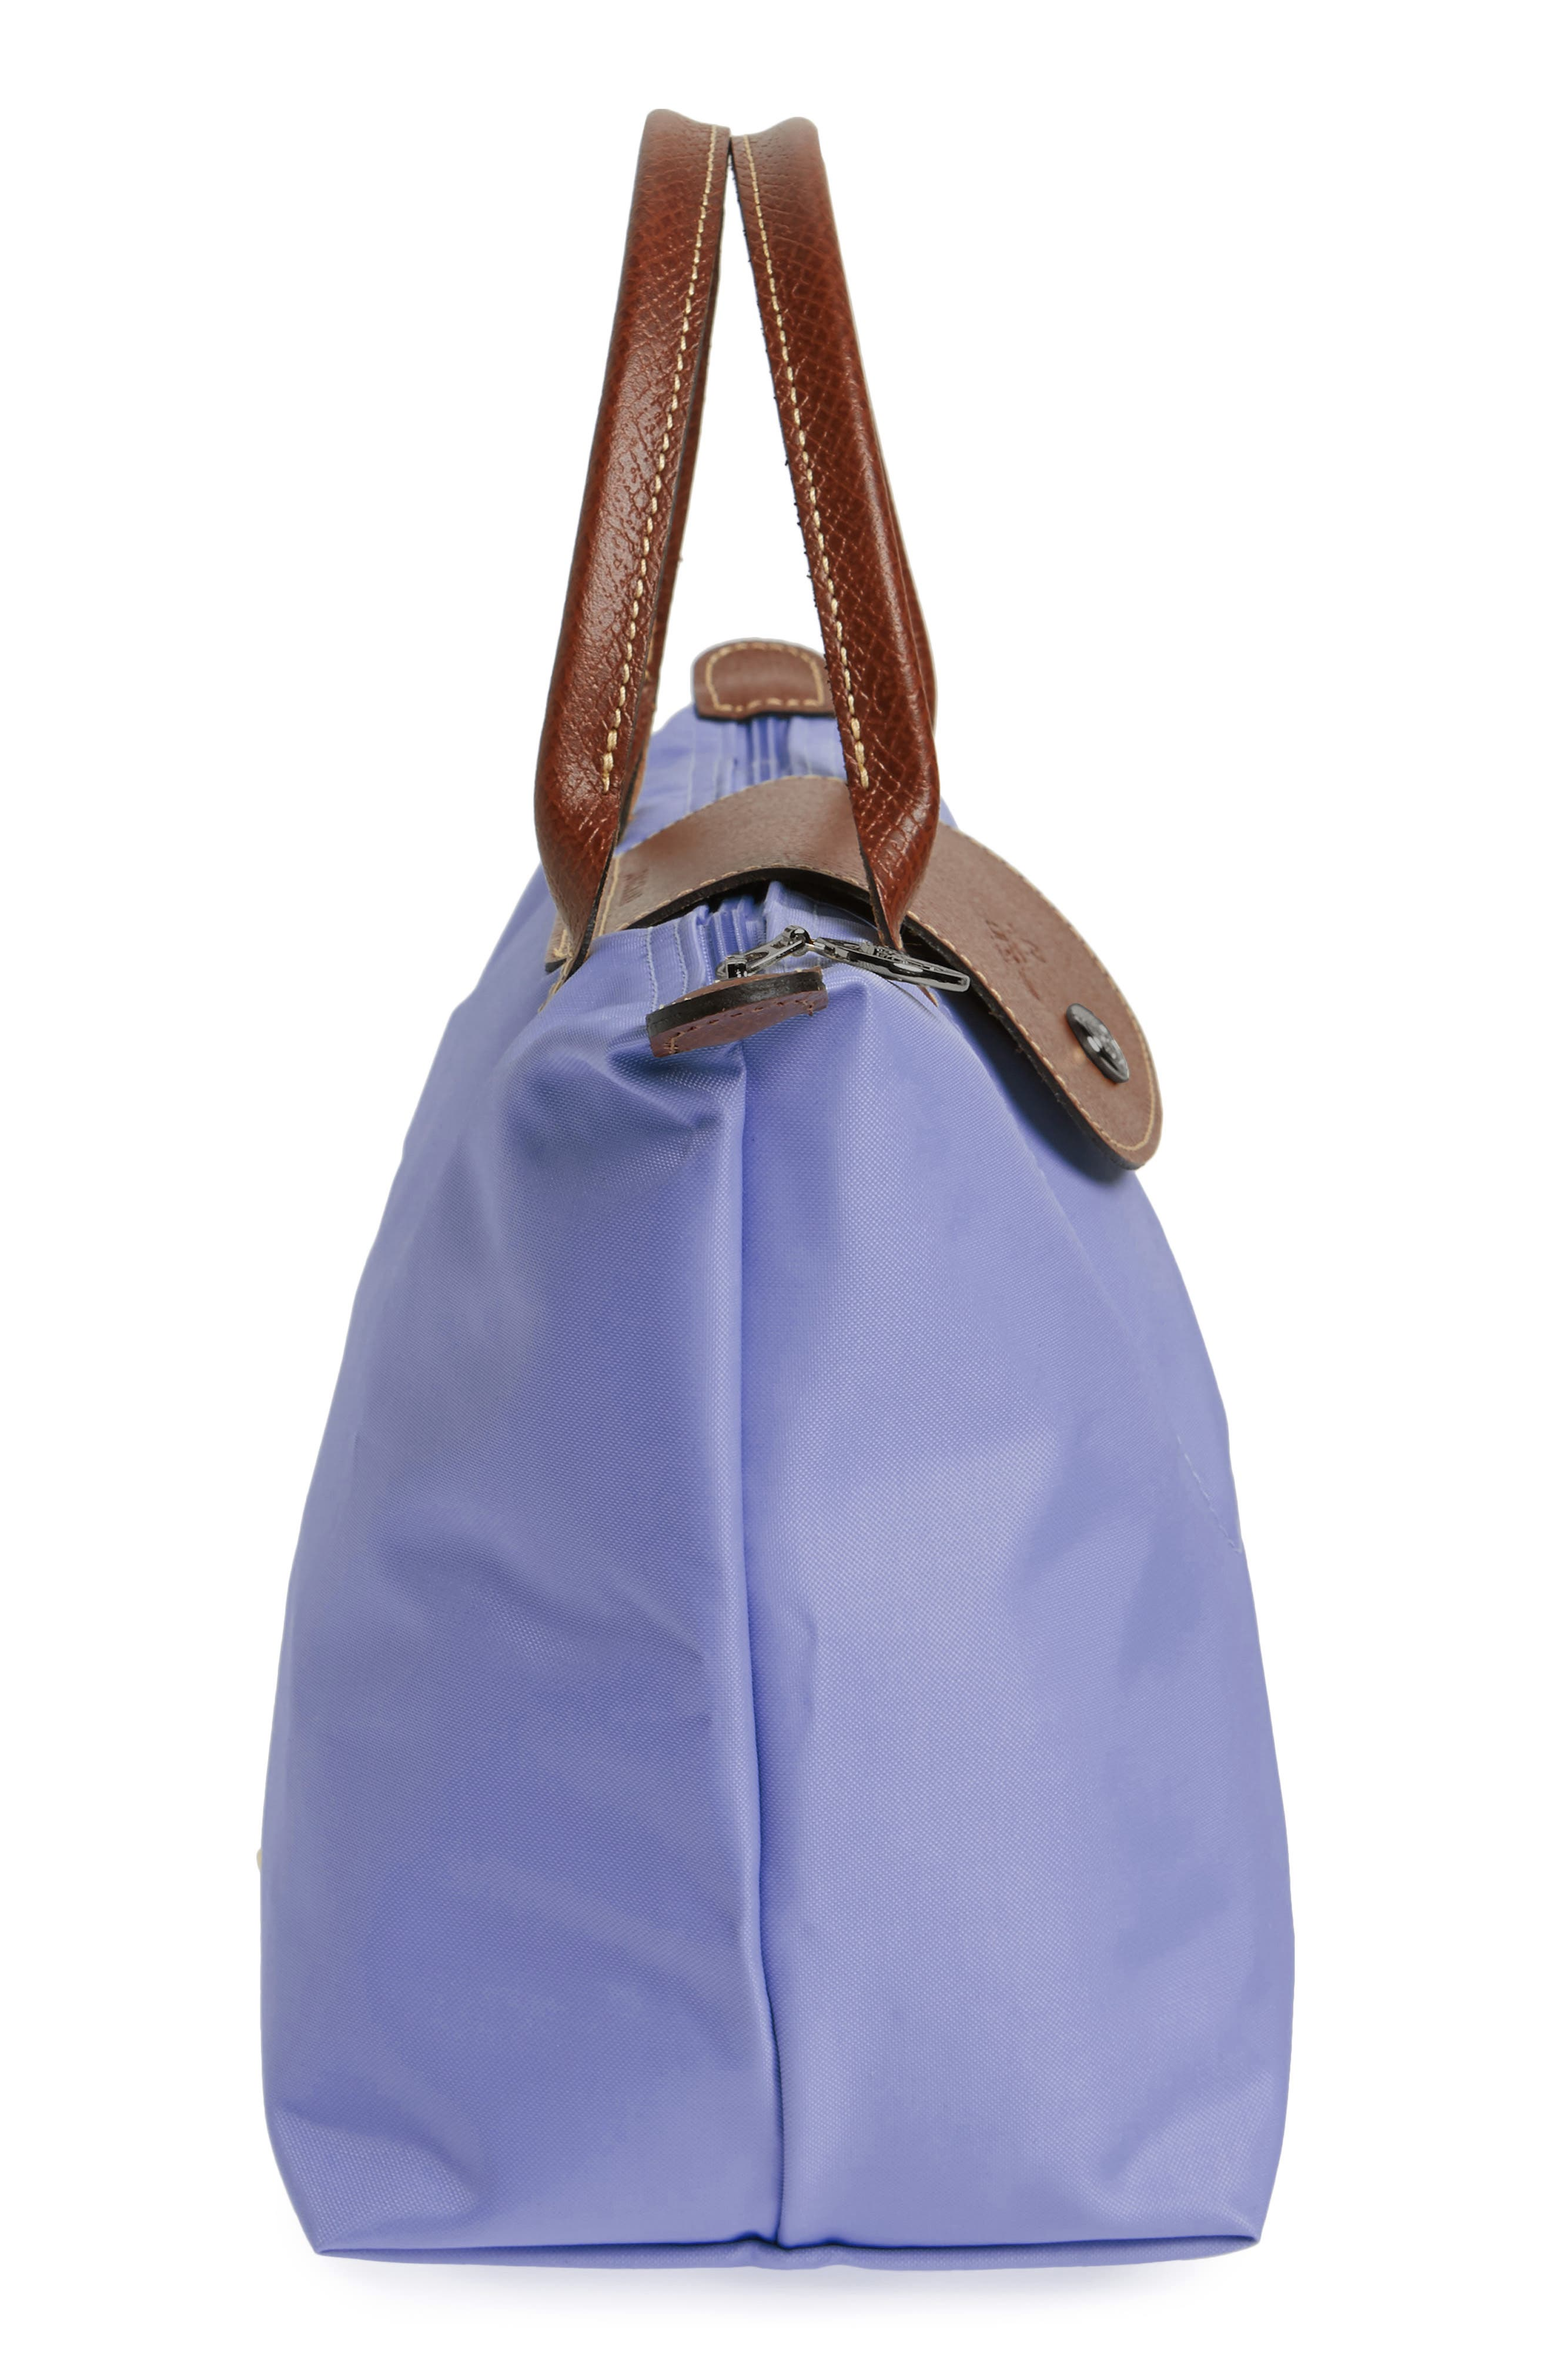 'Small Le Pliage' Top Handle Tote,                             Alternate thumbnail 5, color,                             Lavender